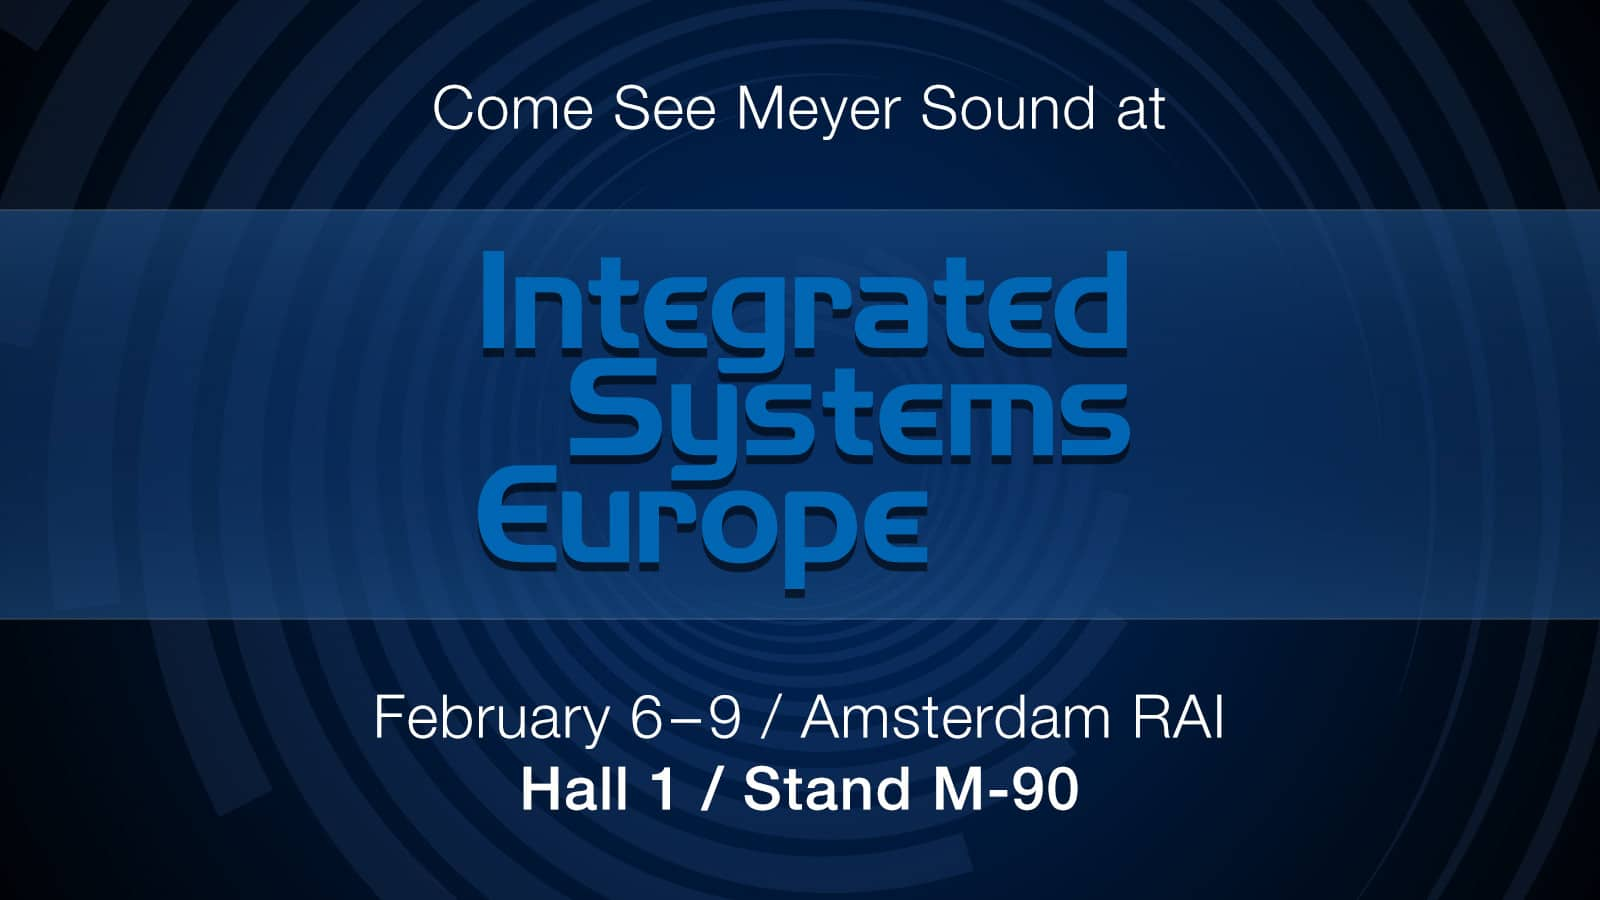 News Meyer Sound Kingdom Hearts Hd 15 Ampamp 25 Remix Narration Eng Sub Title Region 3 Exhibits Education And Awards At Ise In Amsterdam